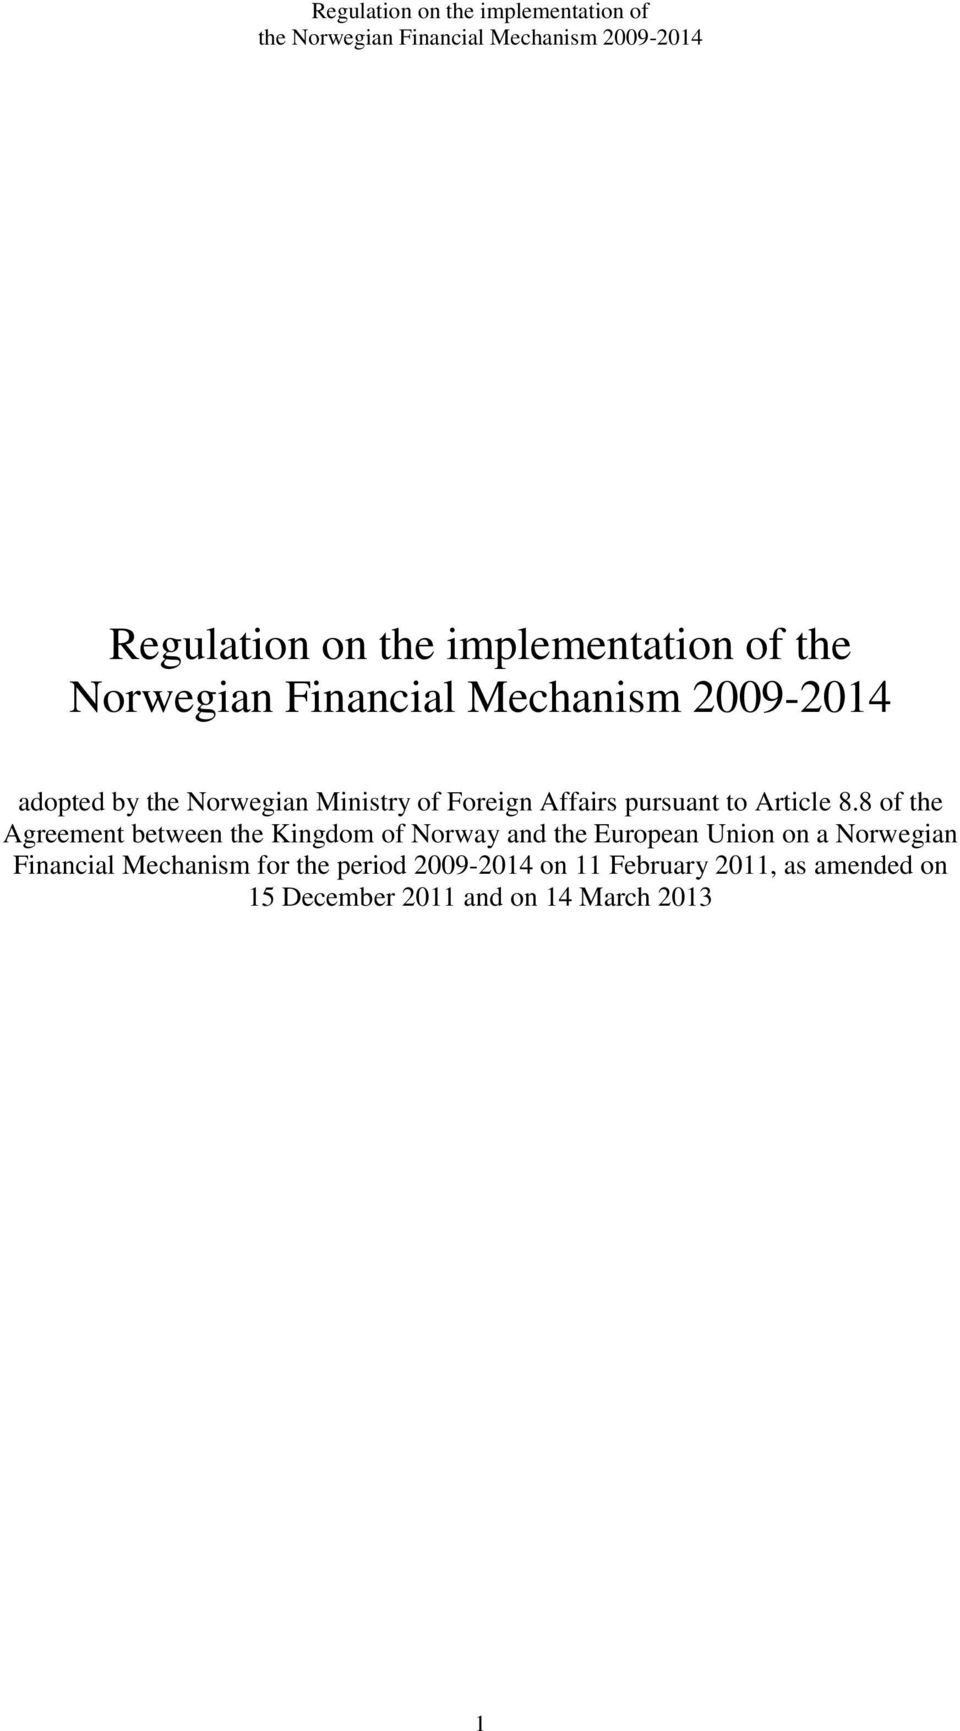 8 of the Agreement between the Kingdom of Norway and the European Union on a Norwegian